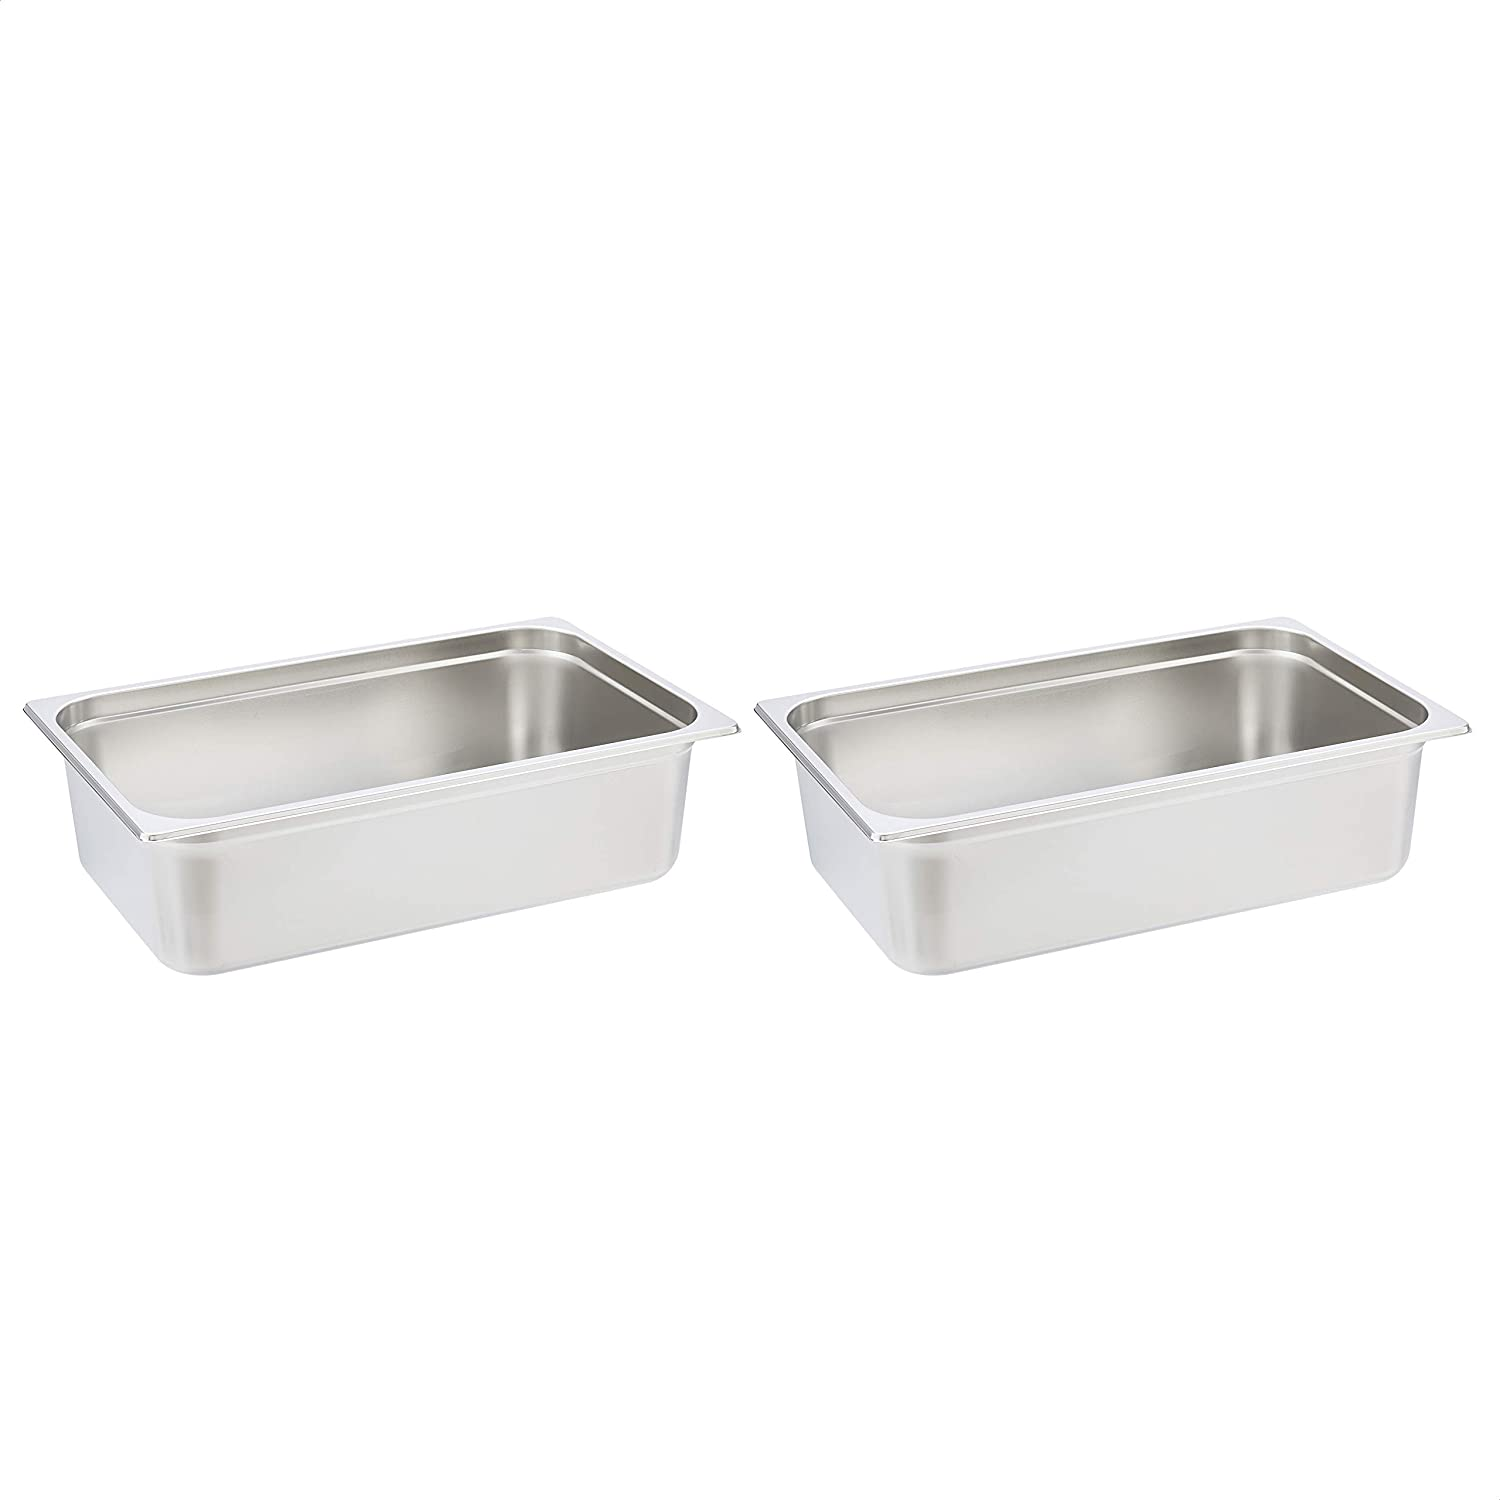 "AmazonCommercial Full Size x 6"" Deep, Anti-Jam Stainless Steel Steam Table/Hotel Pan, 22 Gauge, Pack of 2"